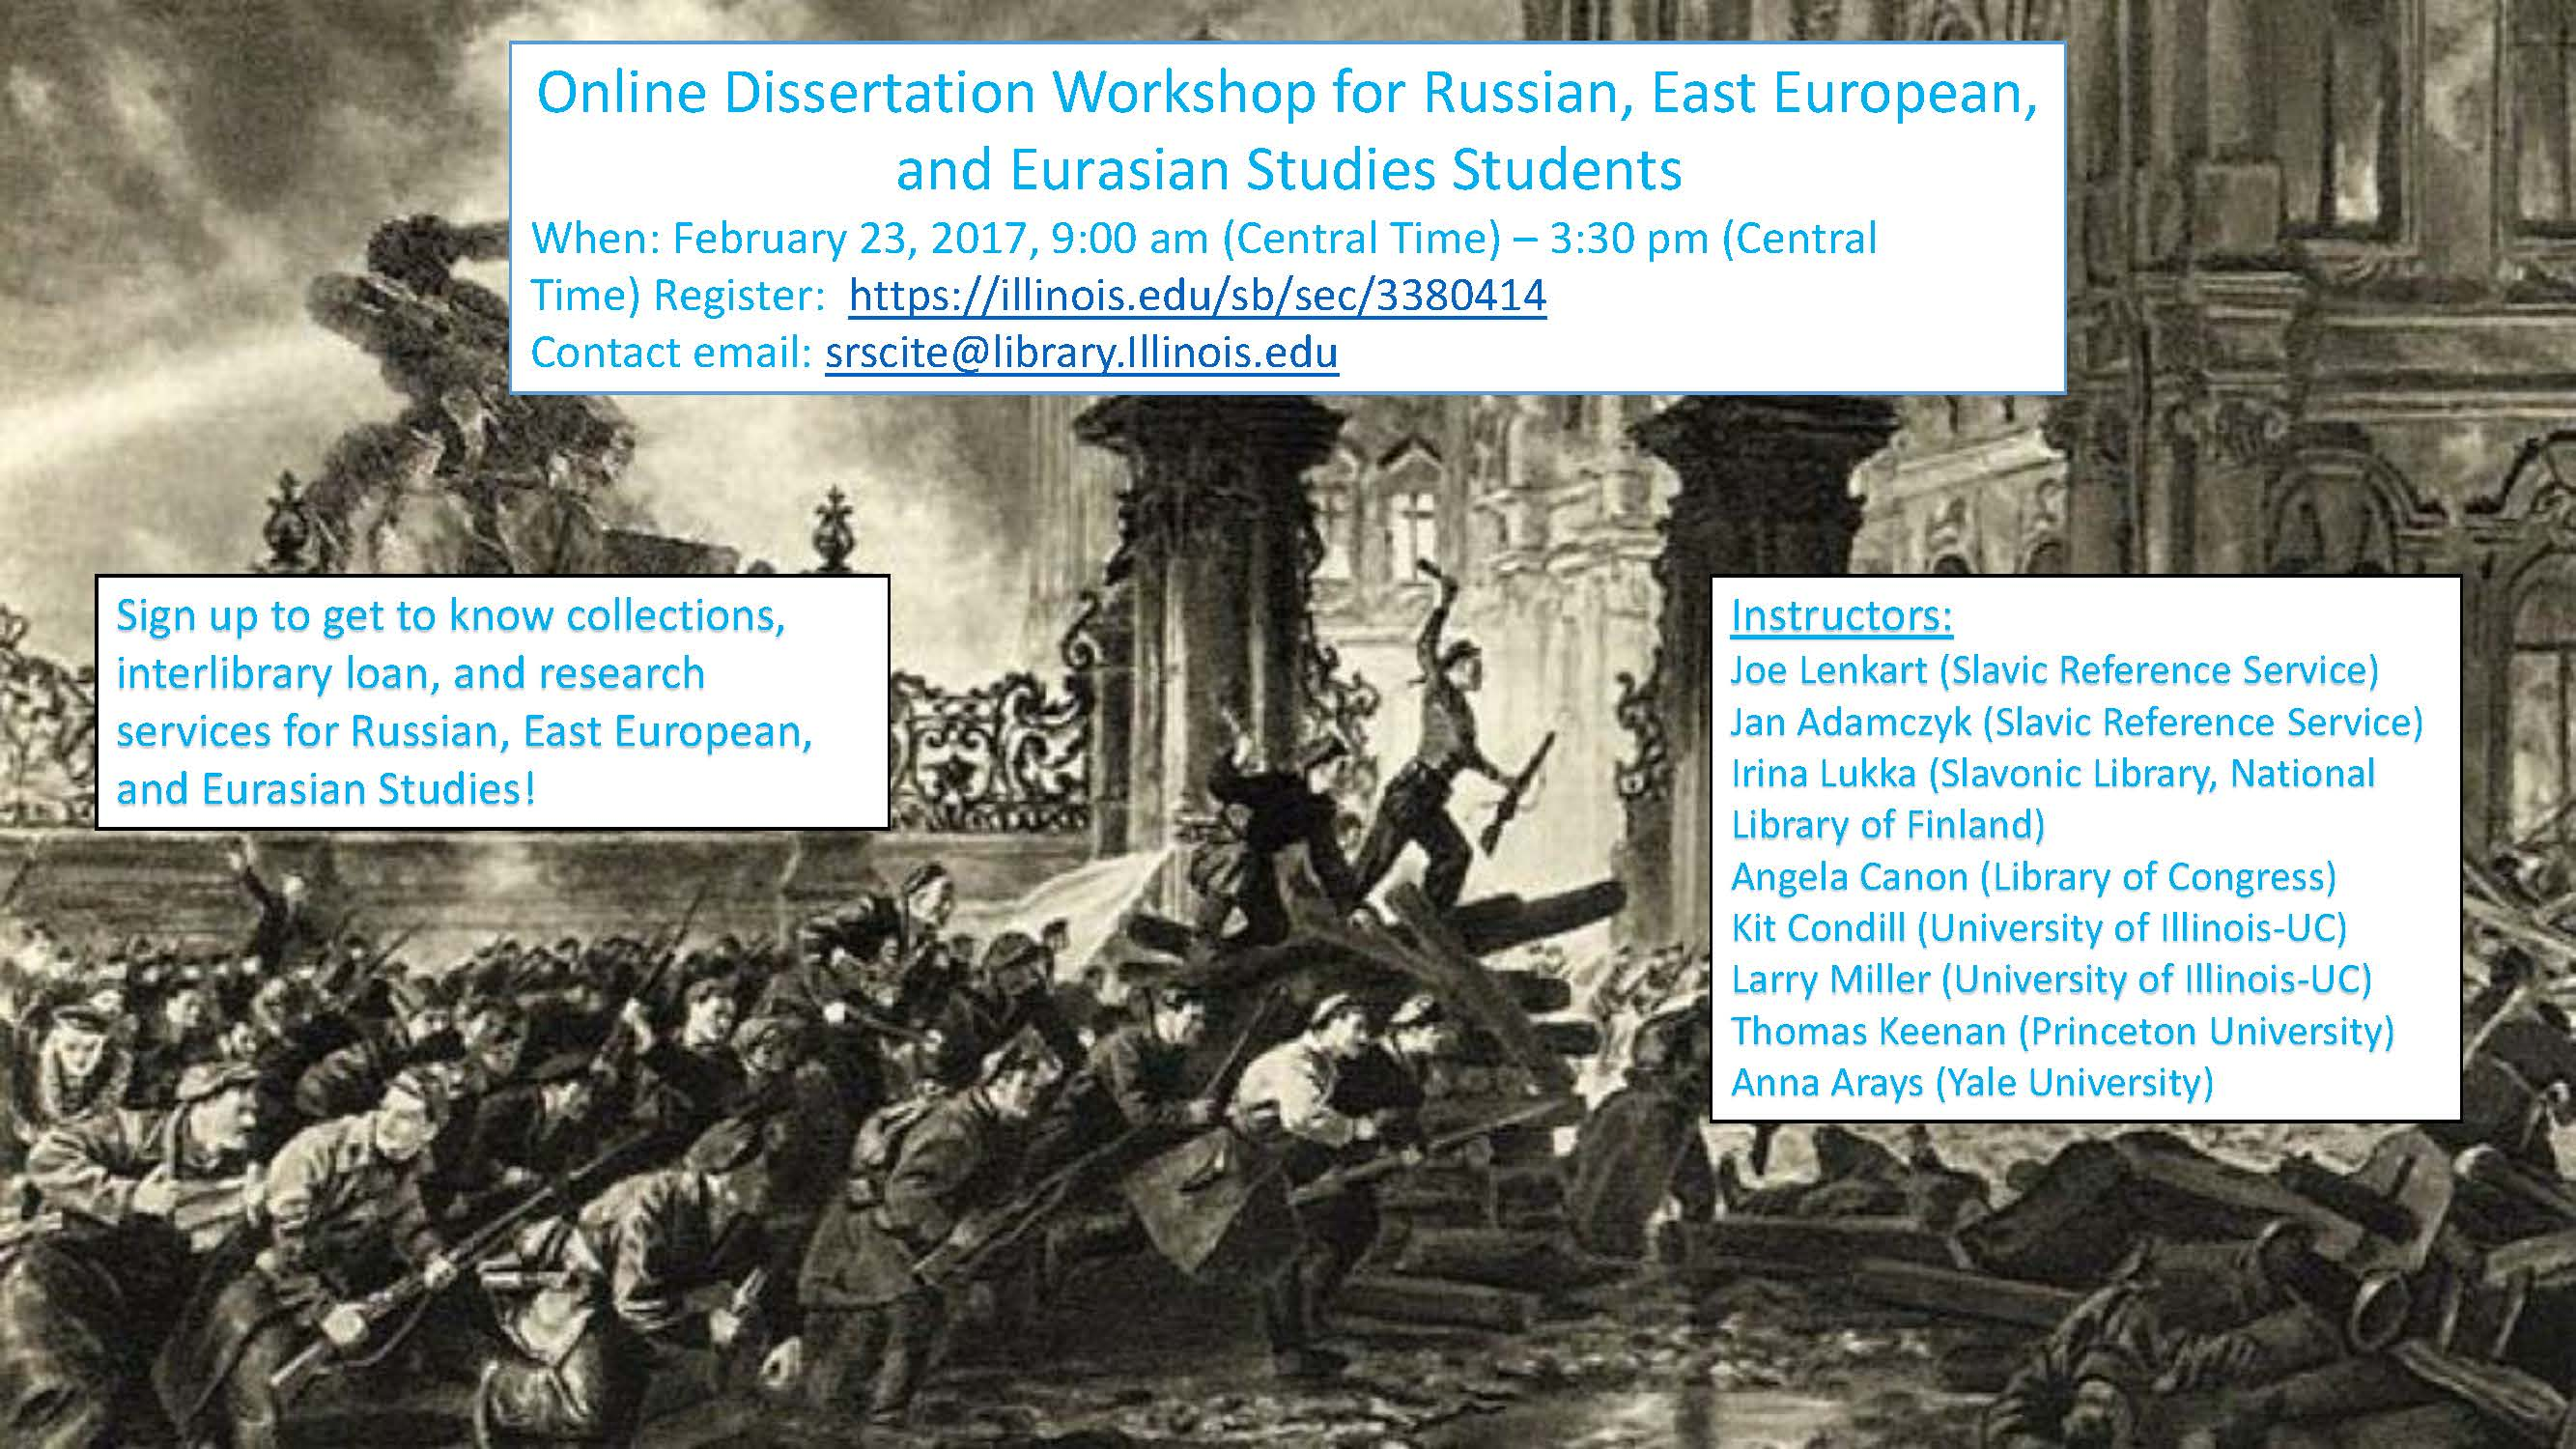 online-doctoral-dissertation-workshop-for-reee-studies-2017-poster